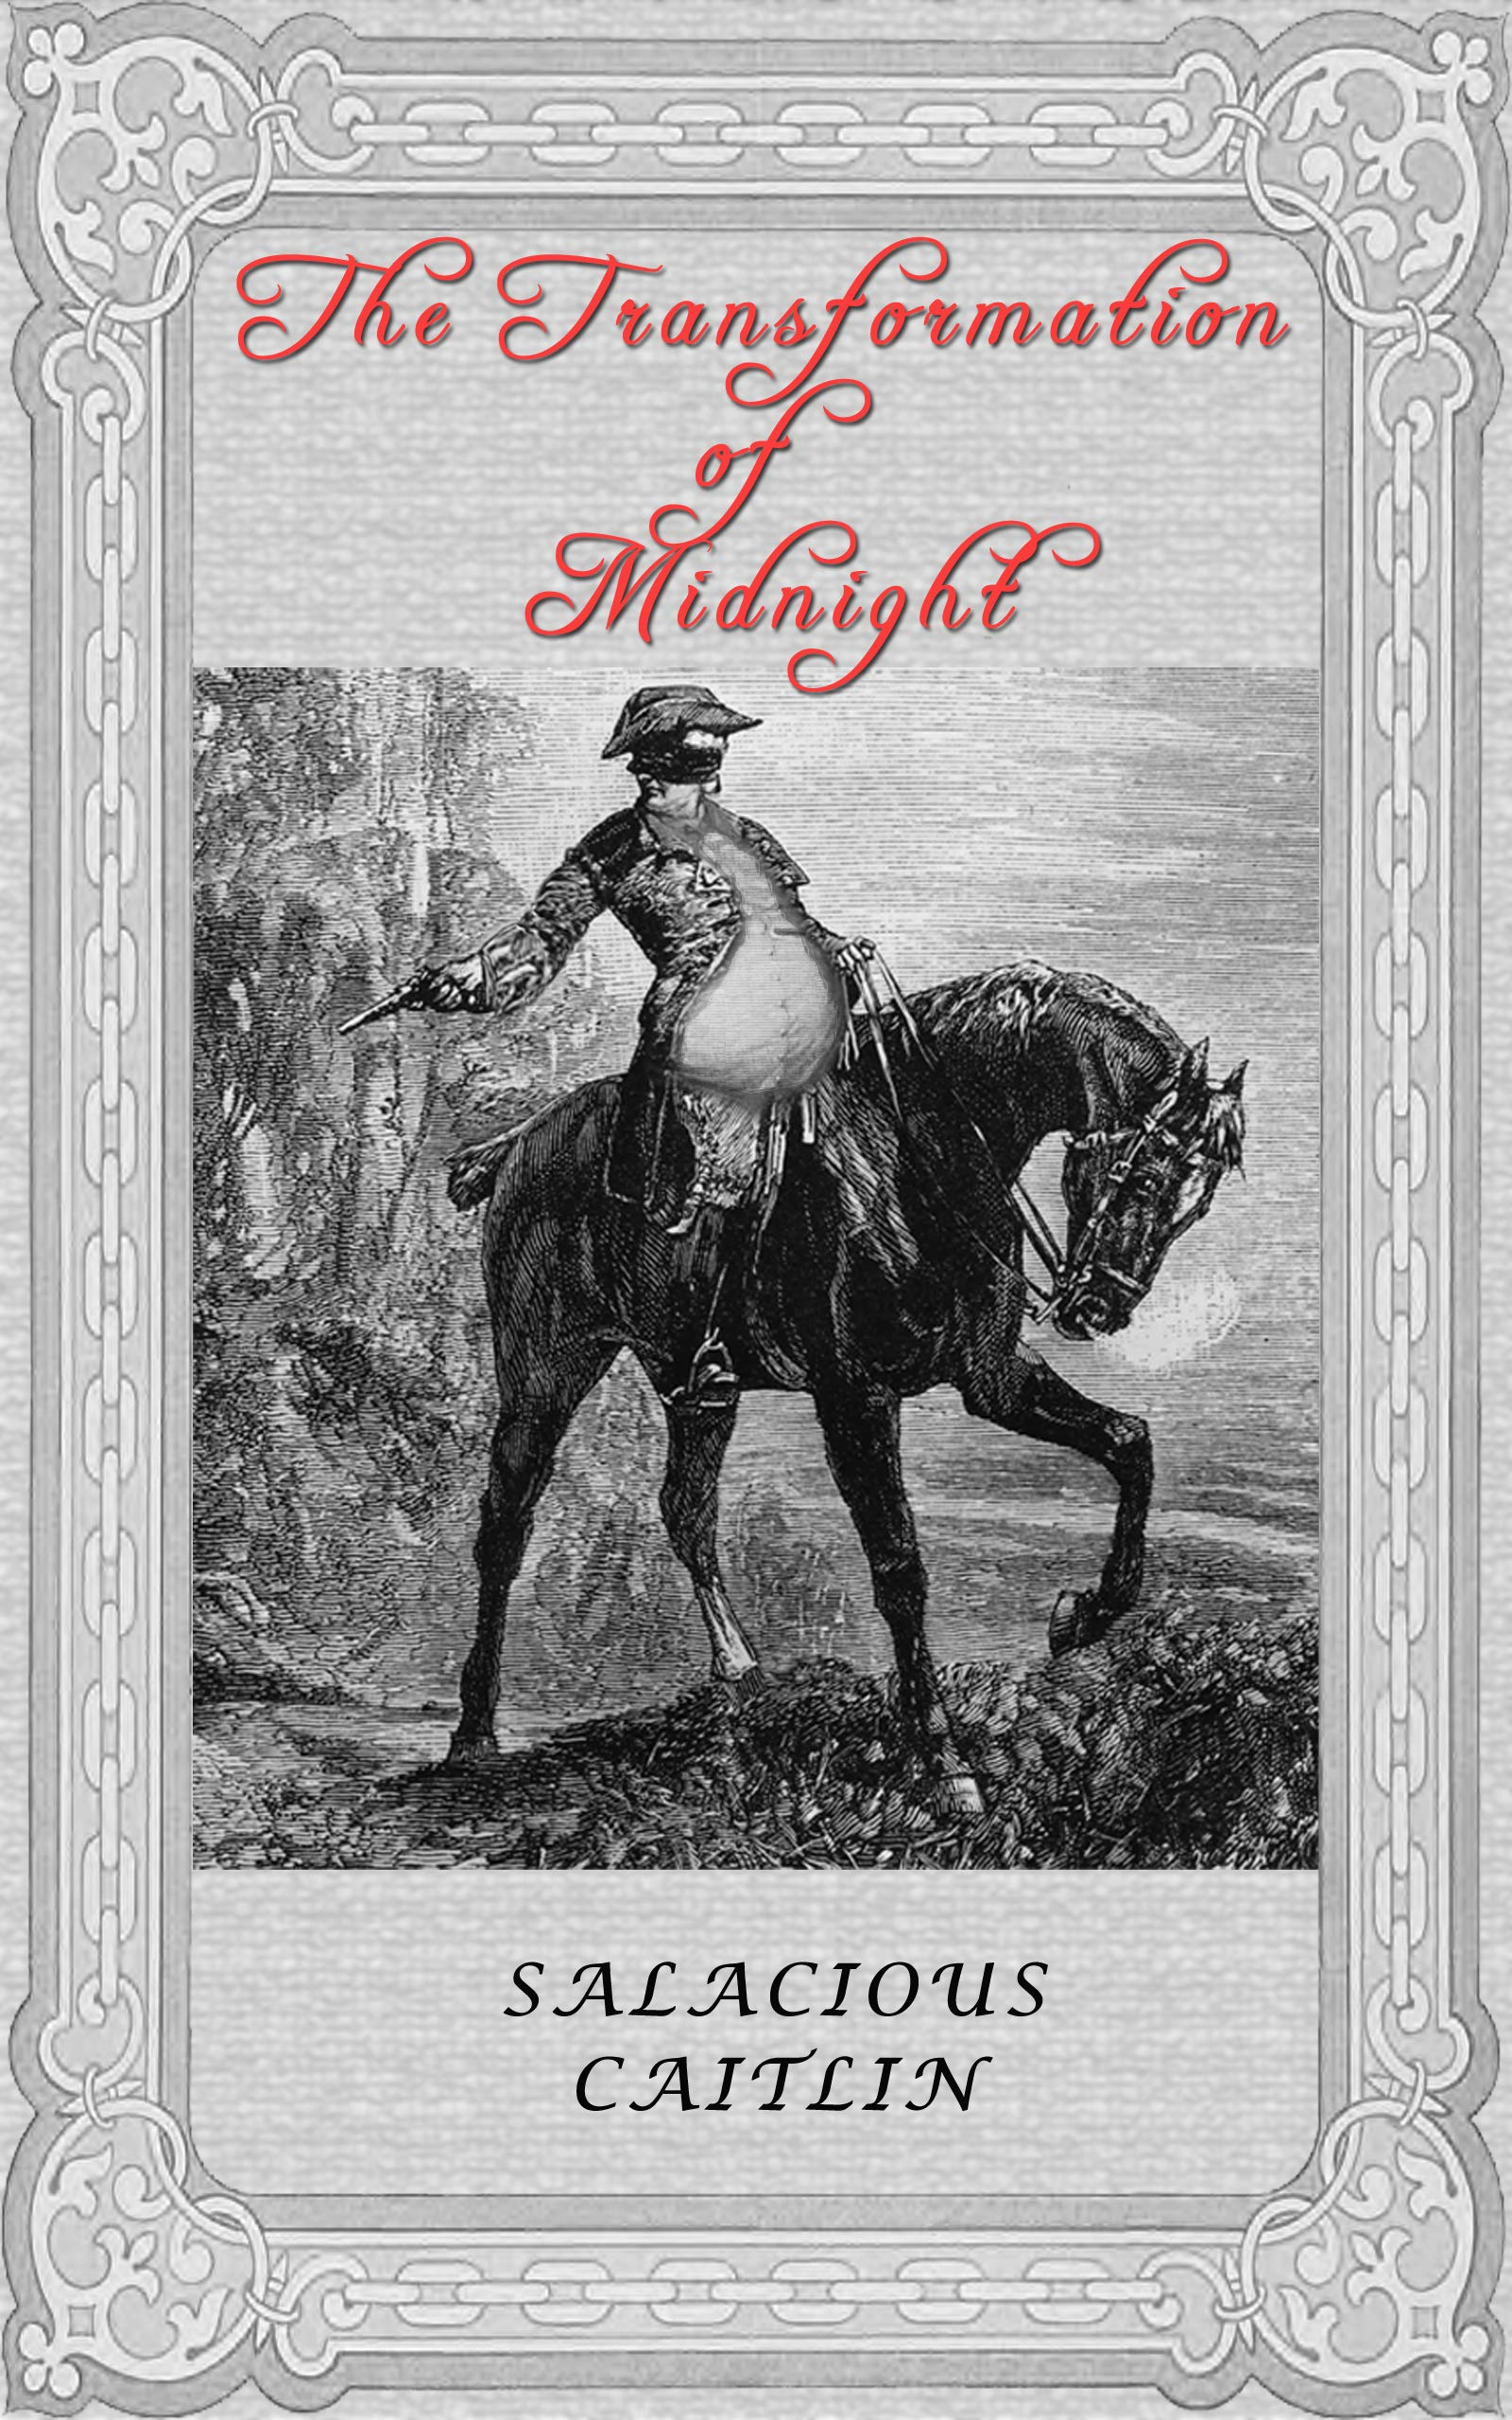 The Transformation of Midnight: A novella-length historical fantasy gay romance involving fat eroticism. For 18 and up only.